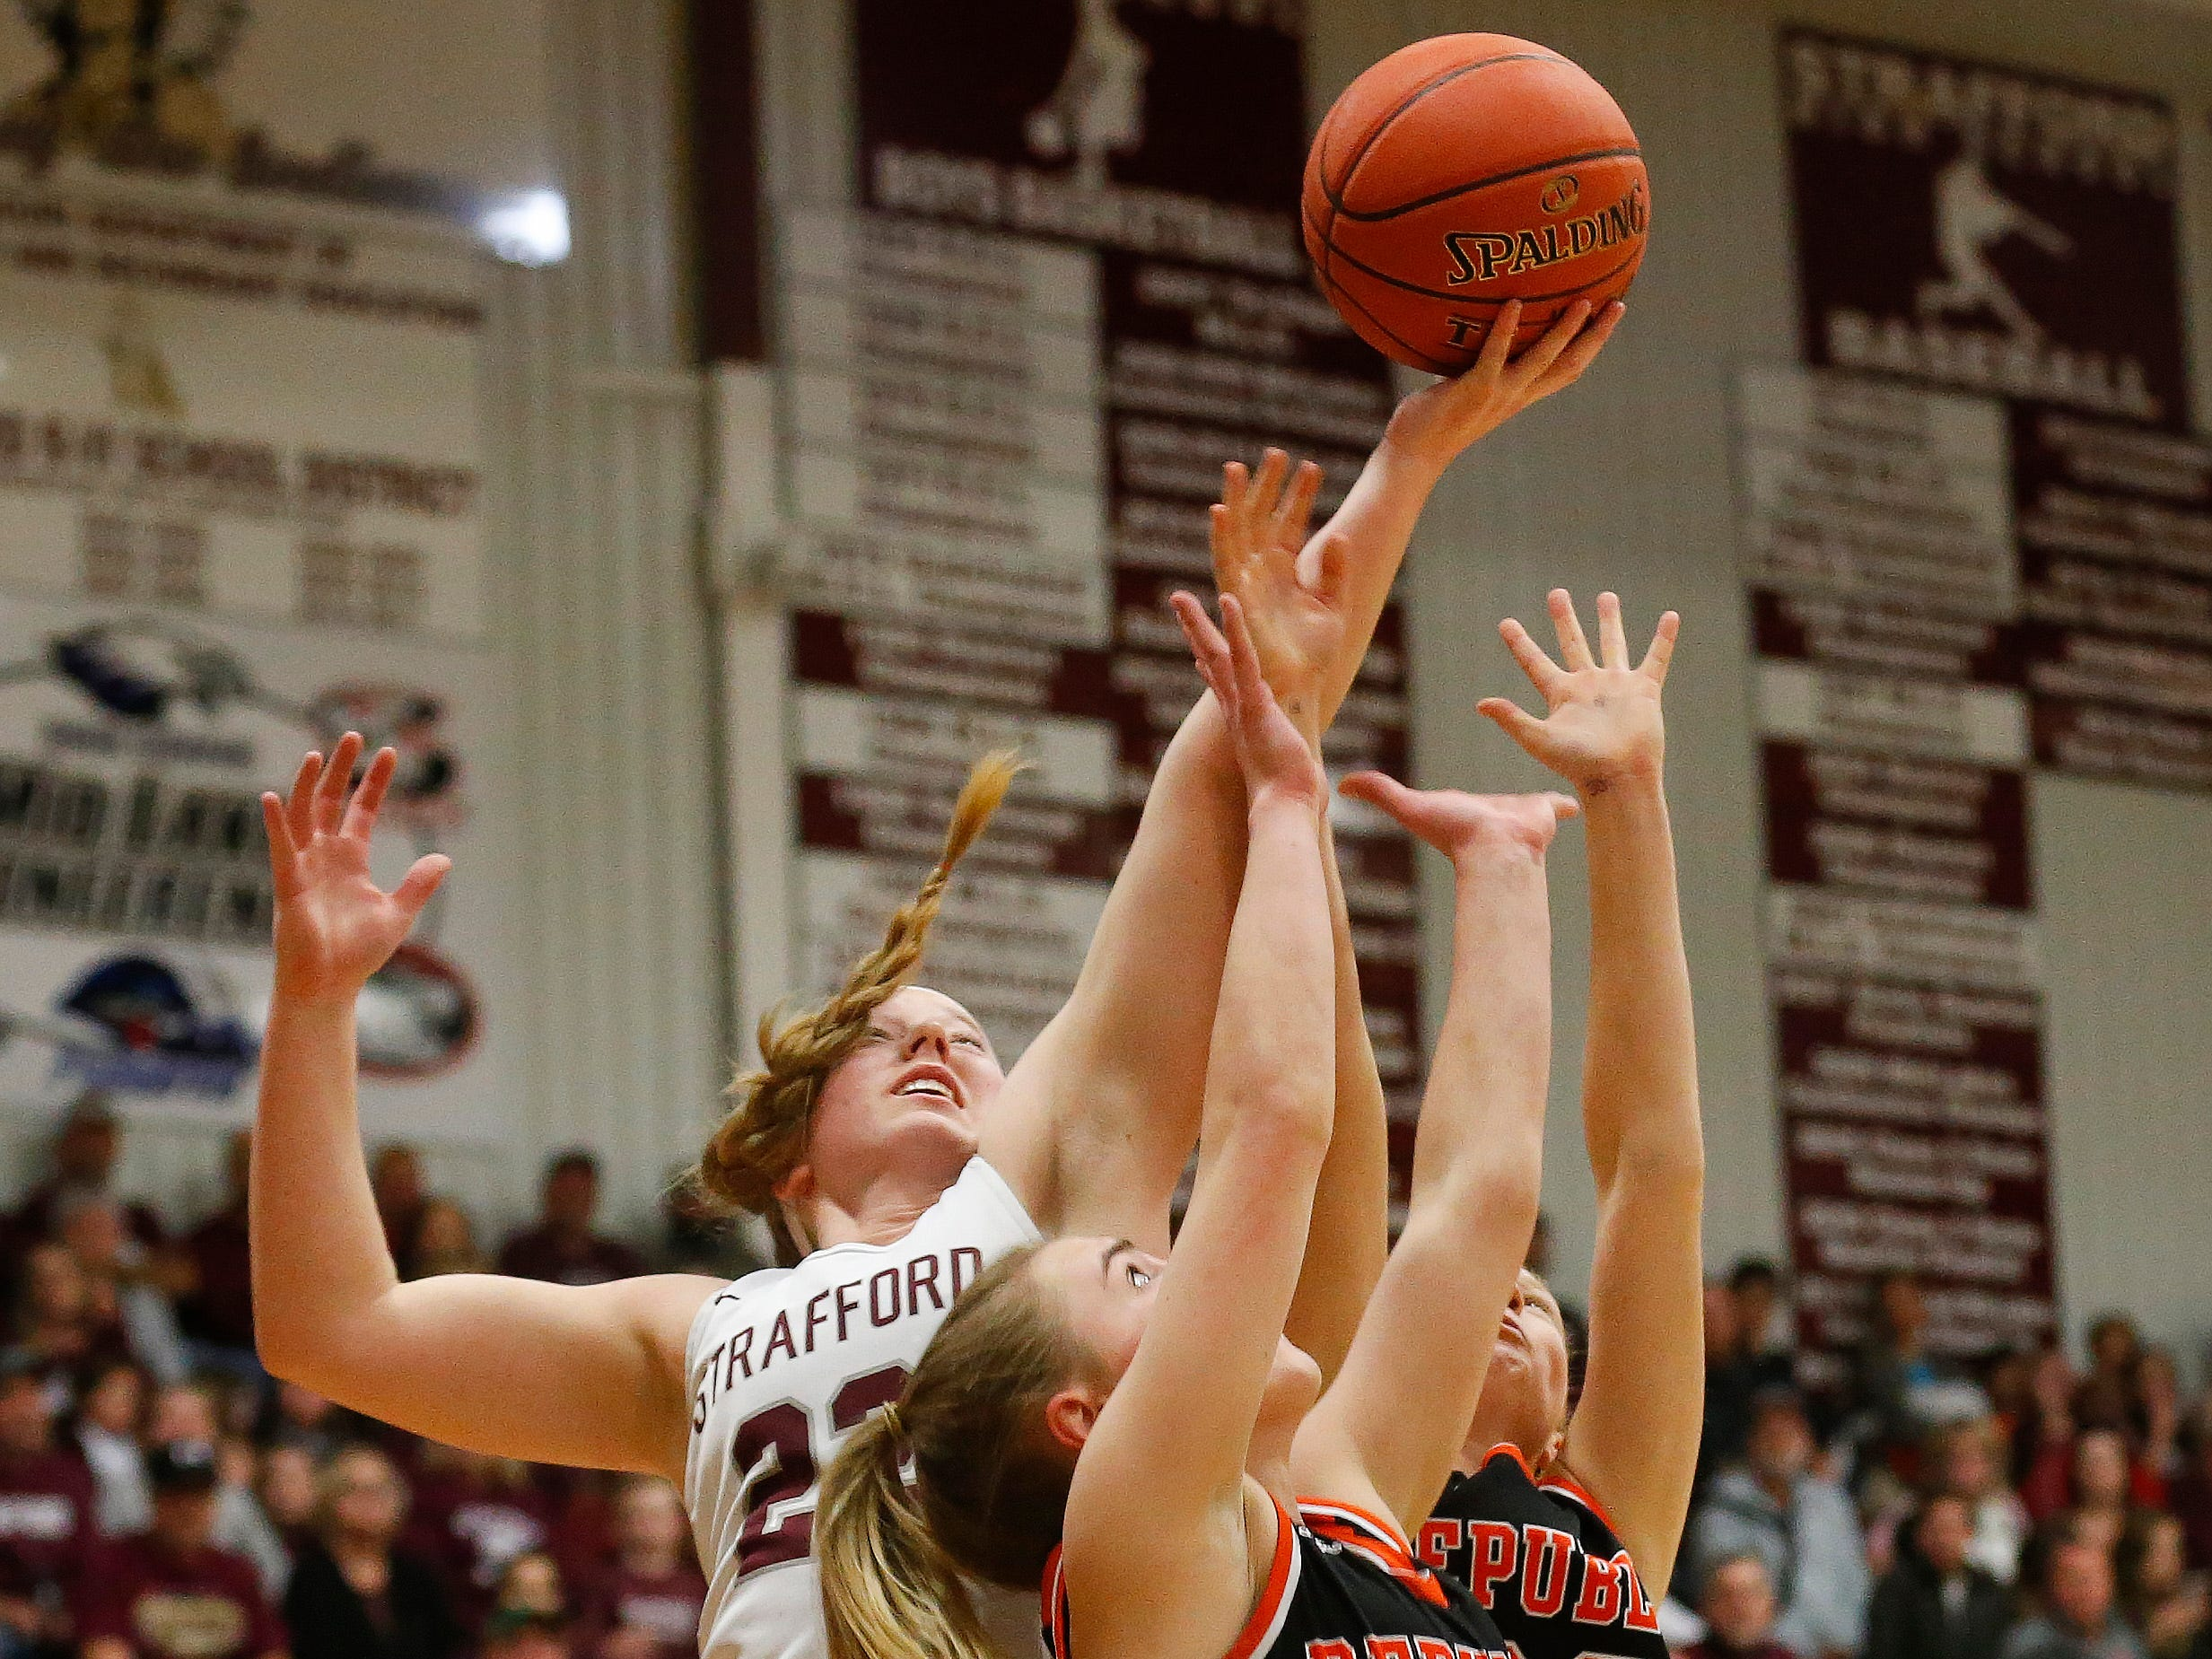 Kayley Frank, of Strafford, gets the rebound during the Indians game against Republic at Strafford High School on Thursday, Jan. 24, 2019.